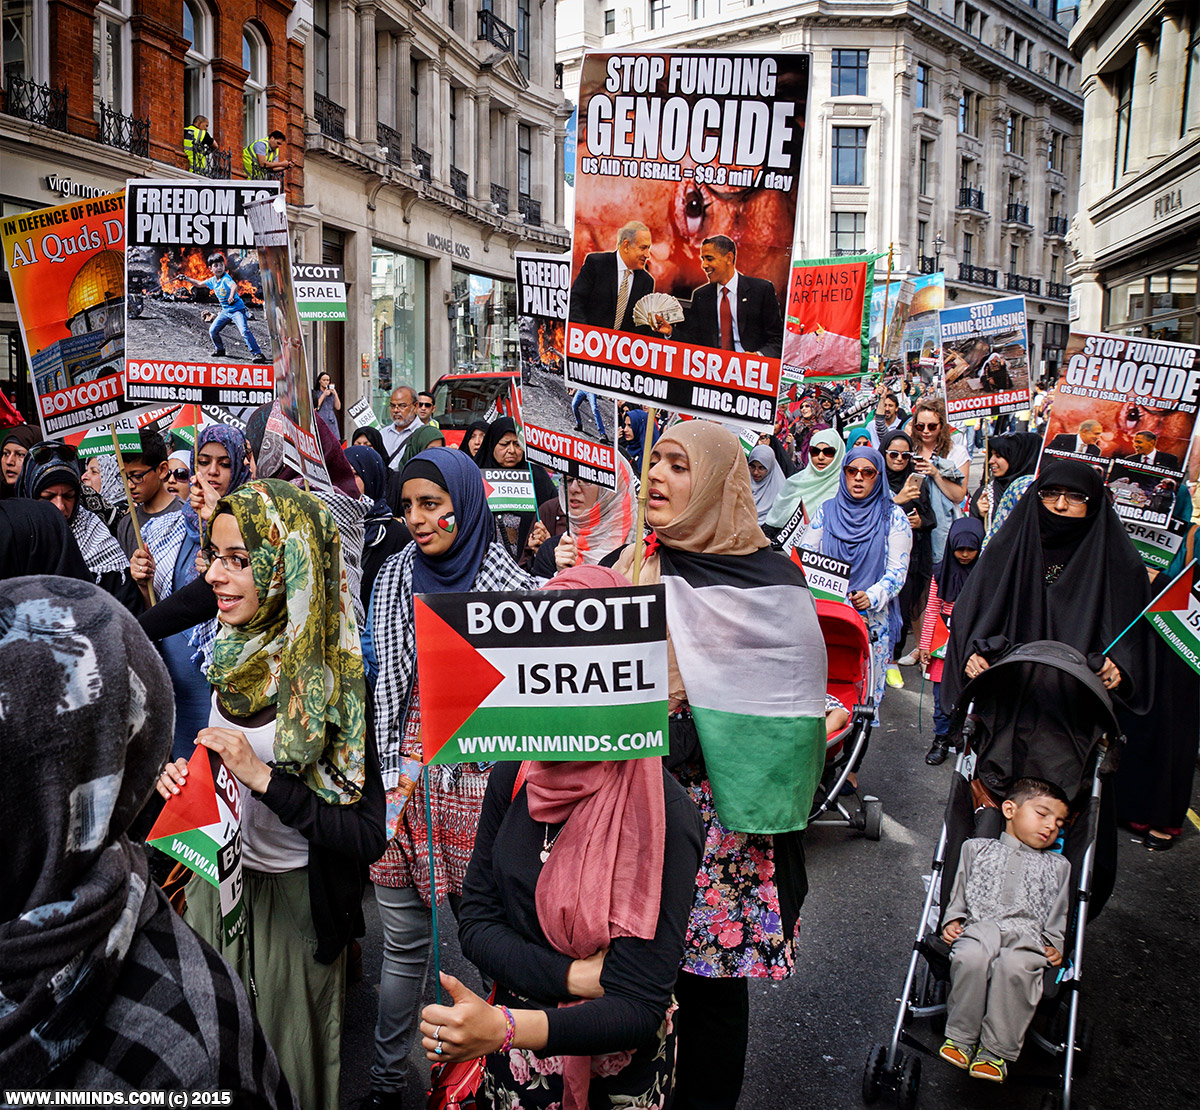 Are you attending AL-QUDS Day 2009 demonstration?